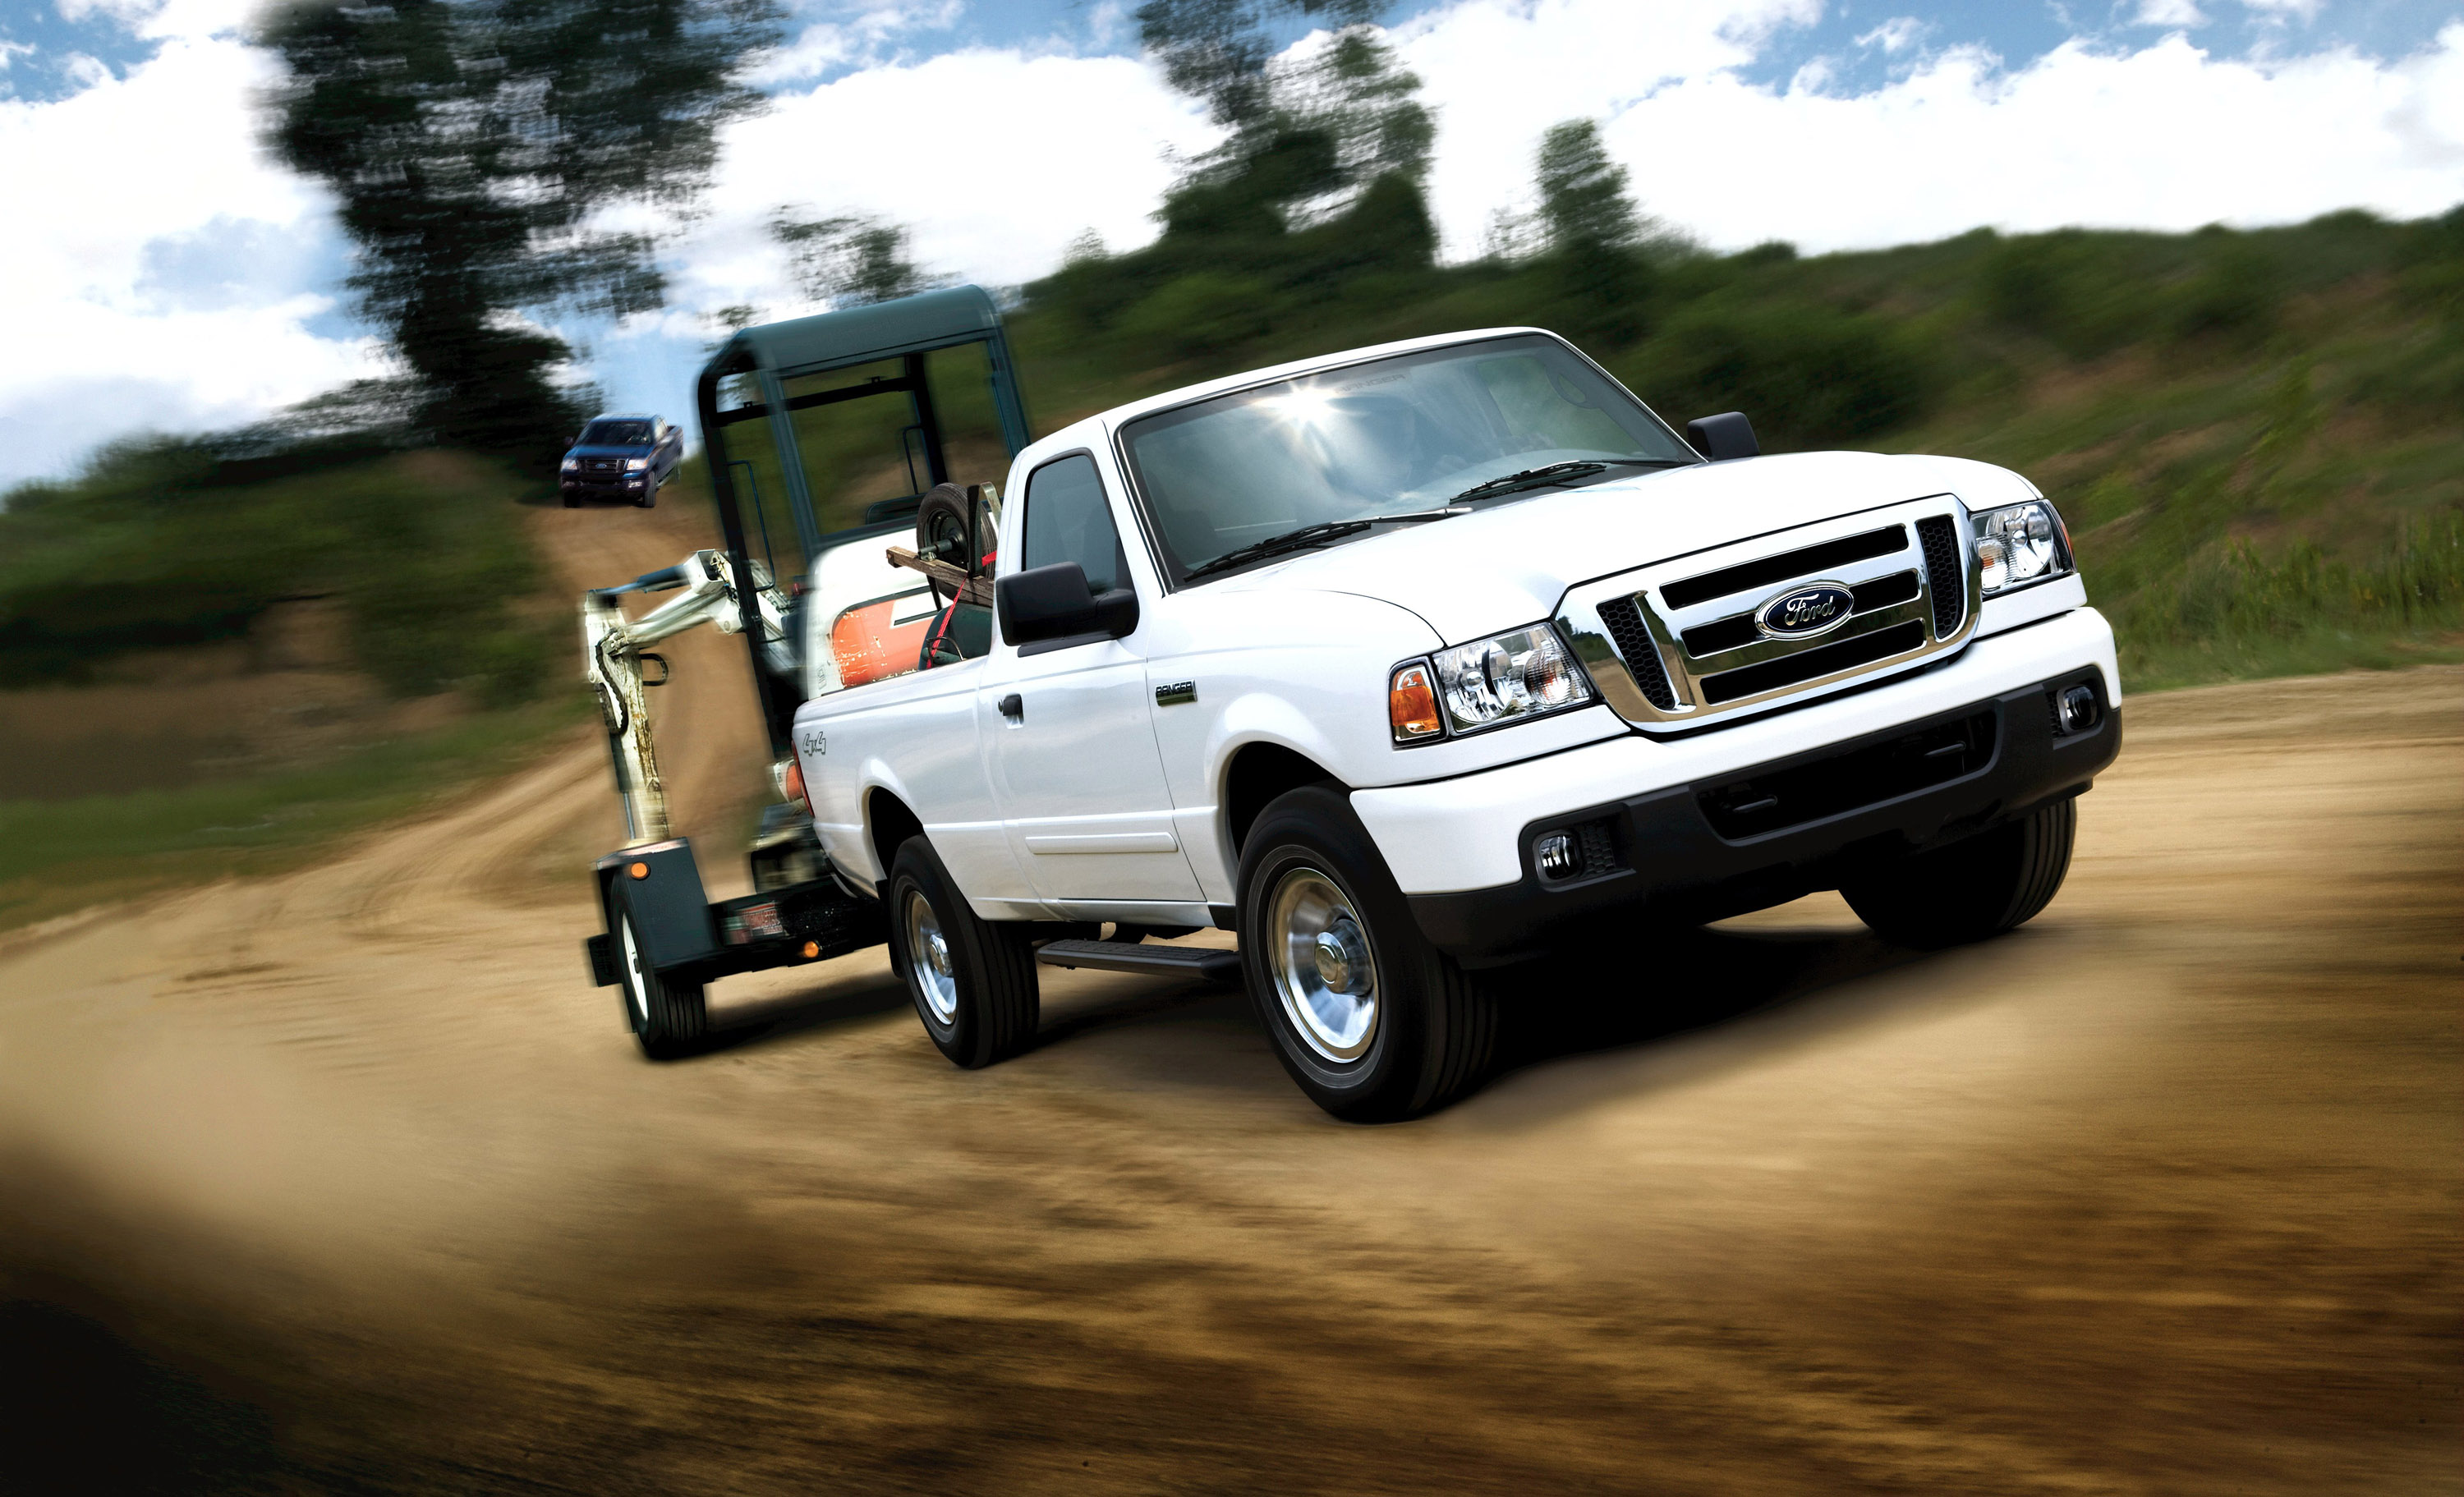 2007 ford ranger top speed rh topspeed com 2011 Ford Ranger Towing Guide 2001 Ford Ranger 4 0 Towing